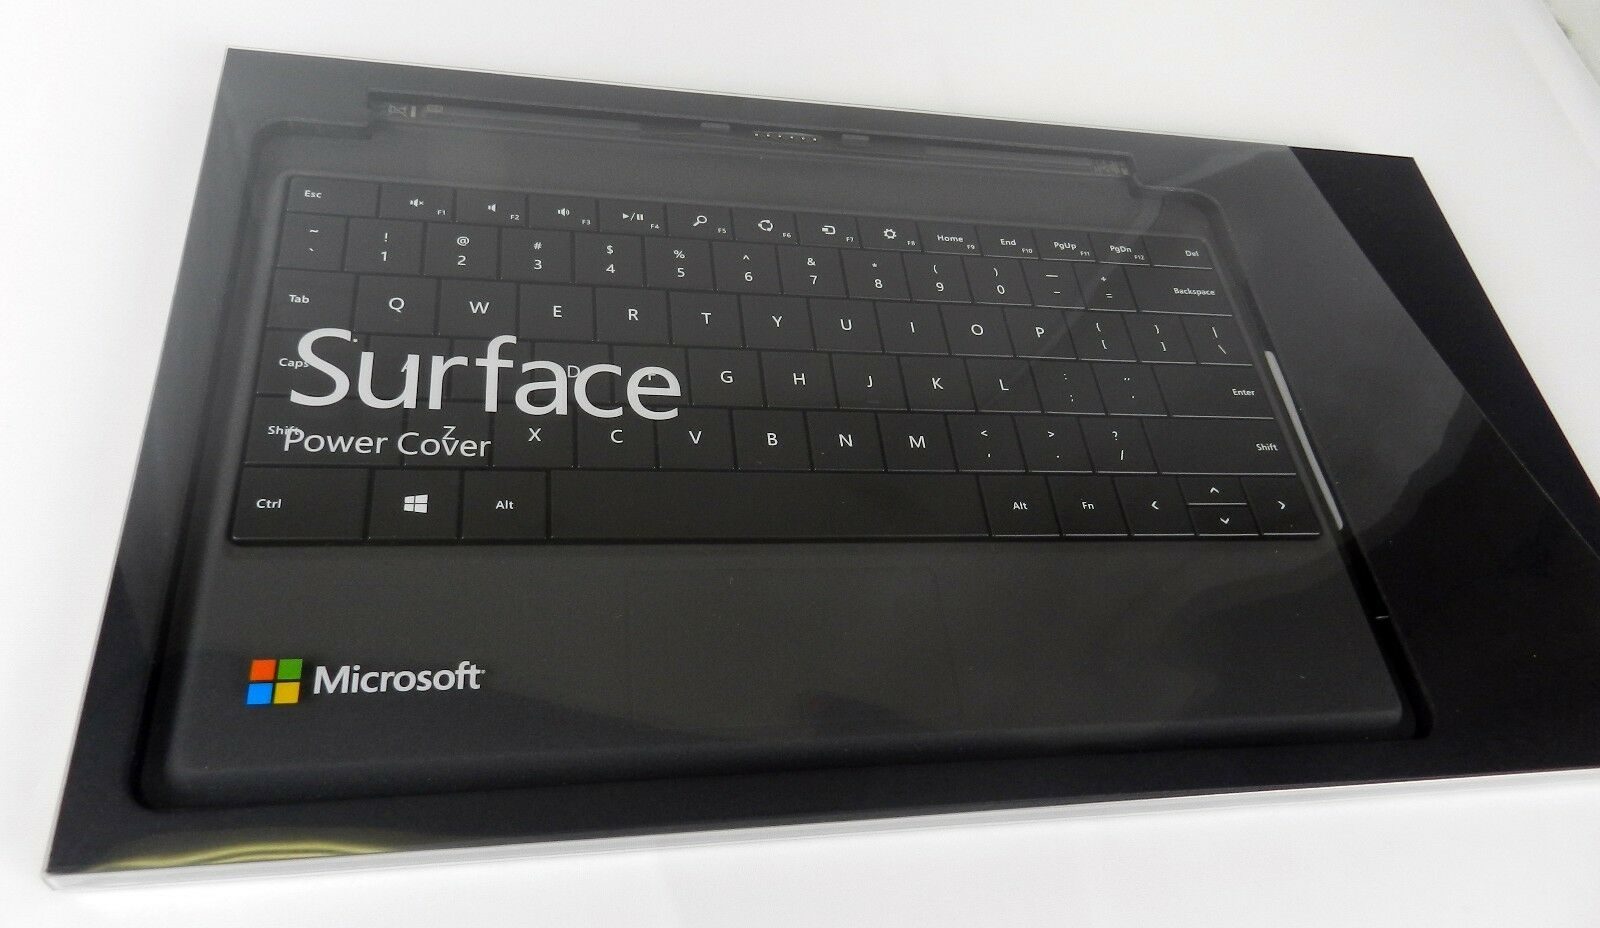 Genuine Microsoft Surface Power Cover Keyboard - Ms Surfa...